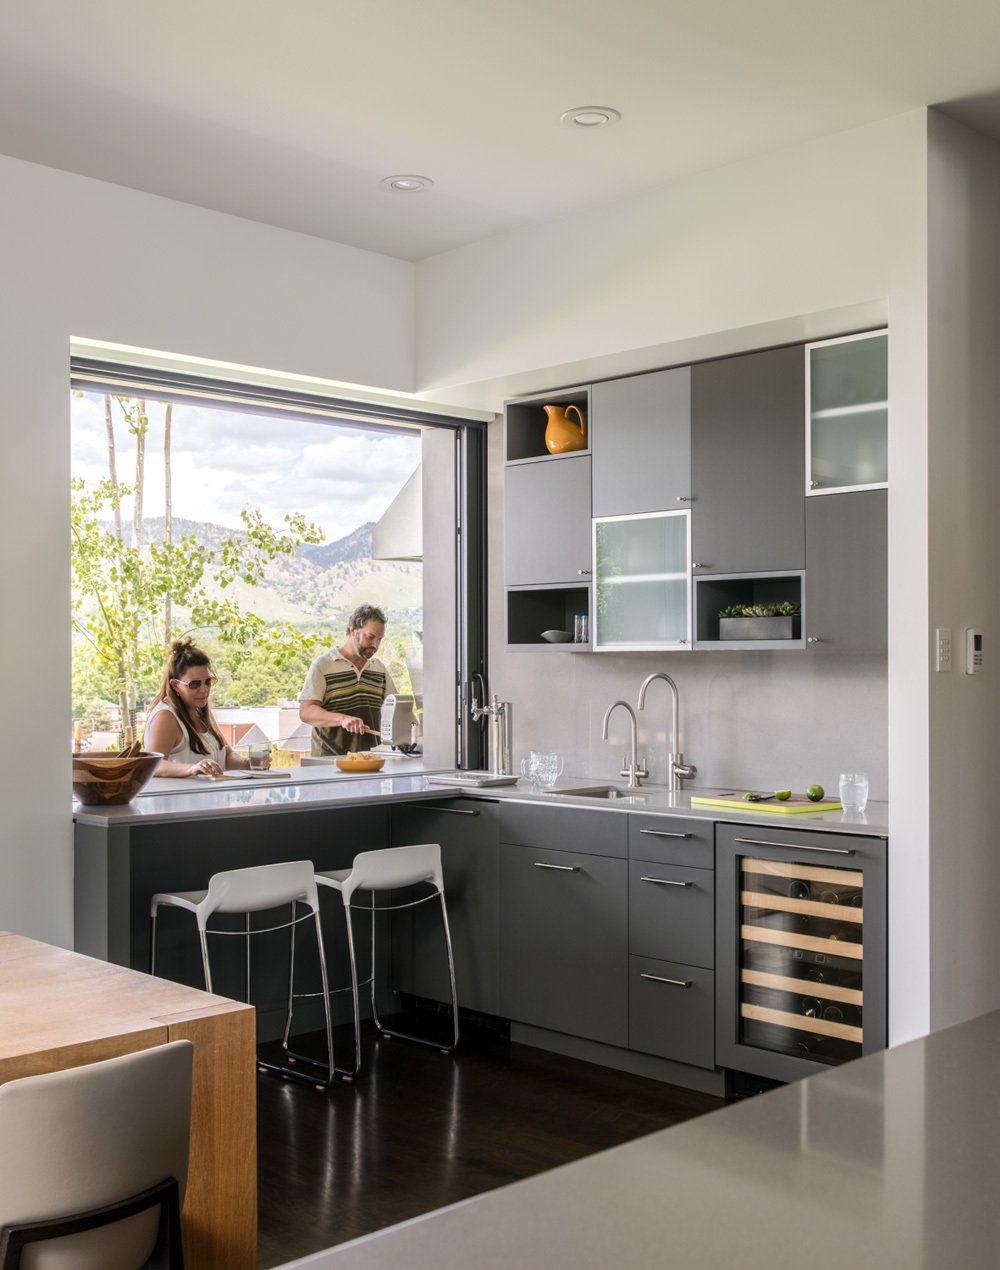 A Pocket Window In The Kitchen Allows For Double Sided Bar Area With